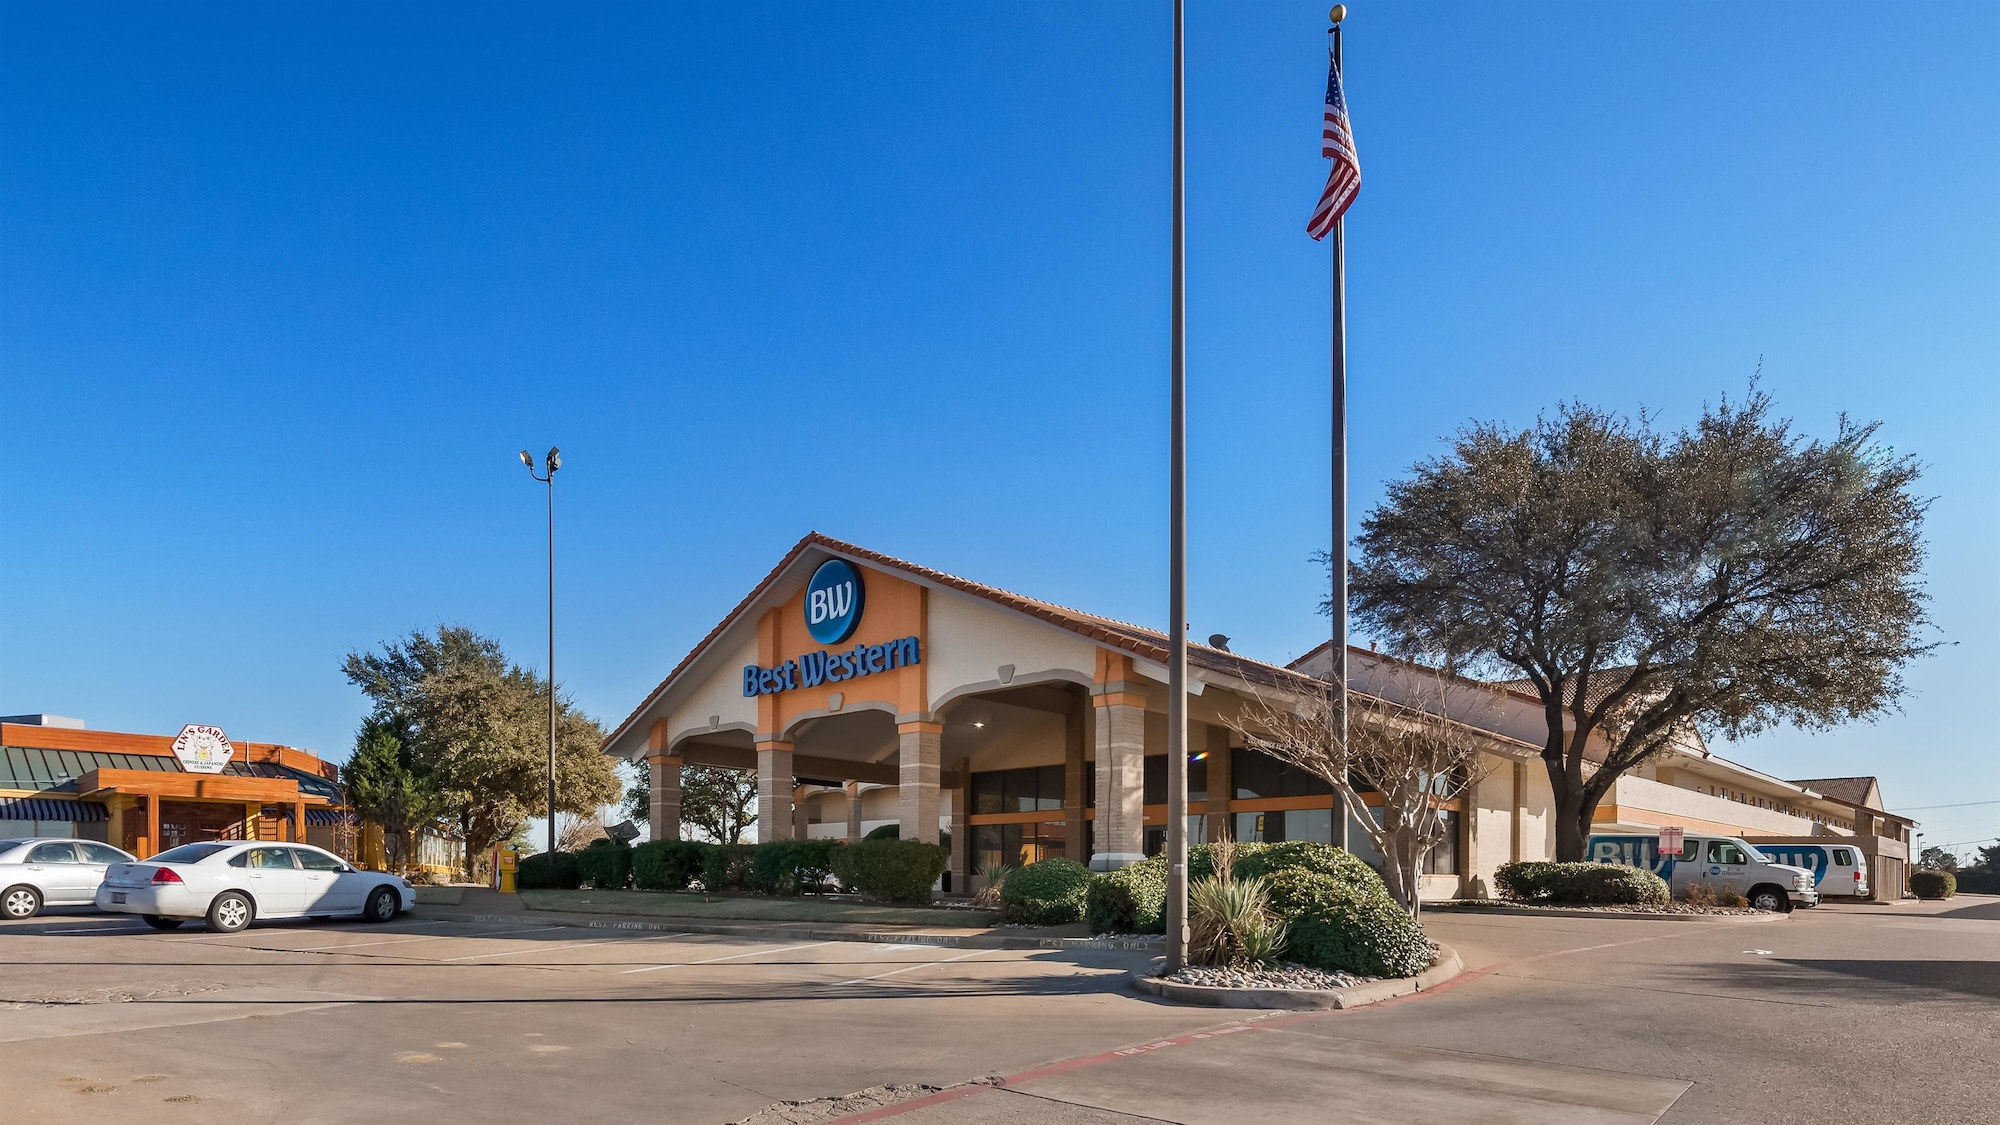 Best Western Irving Inn & Suites at DFW Airport, Dallas